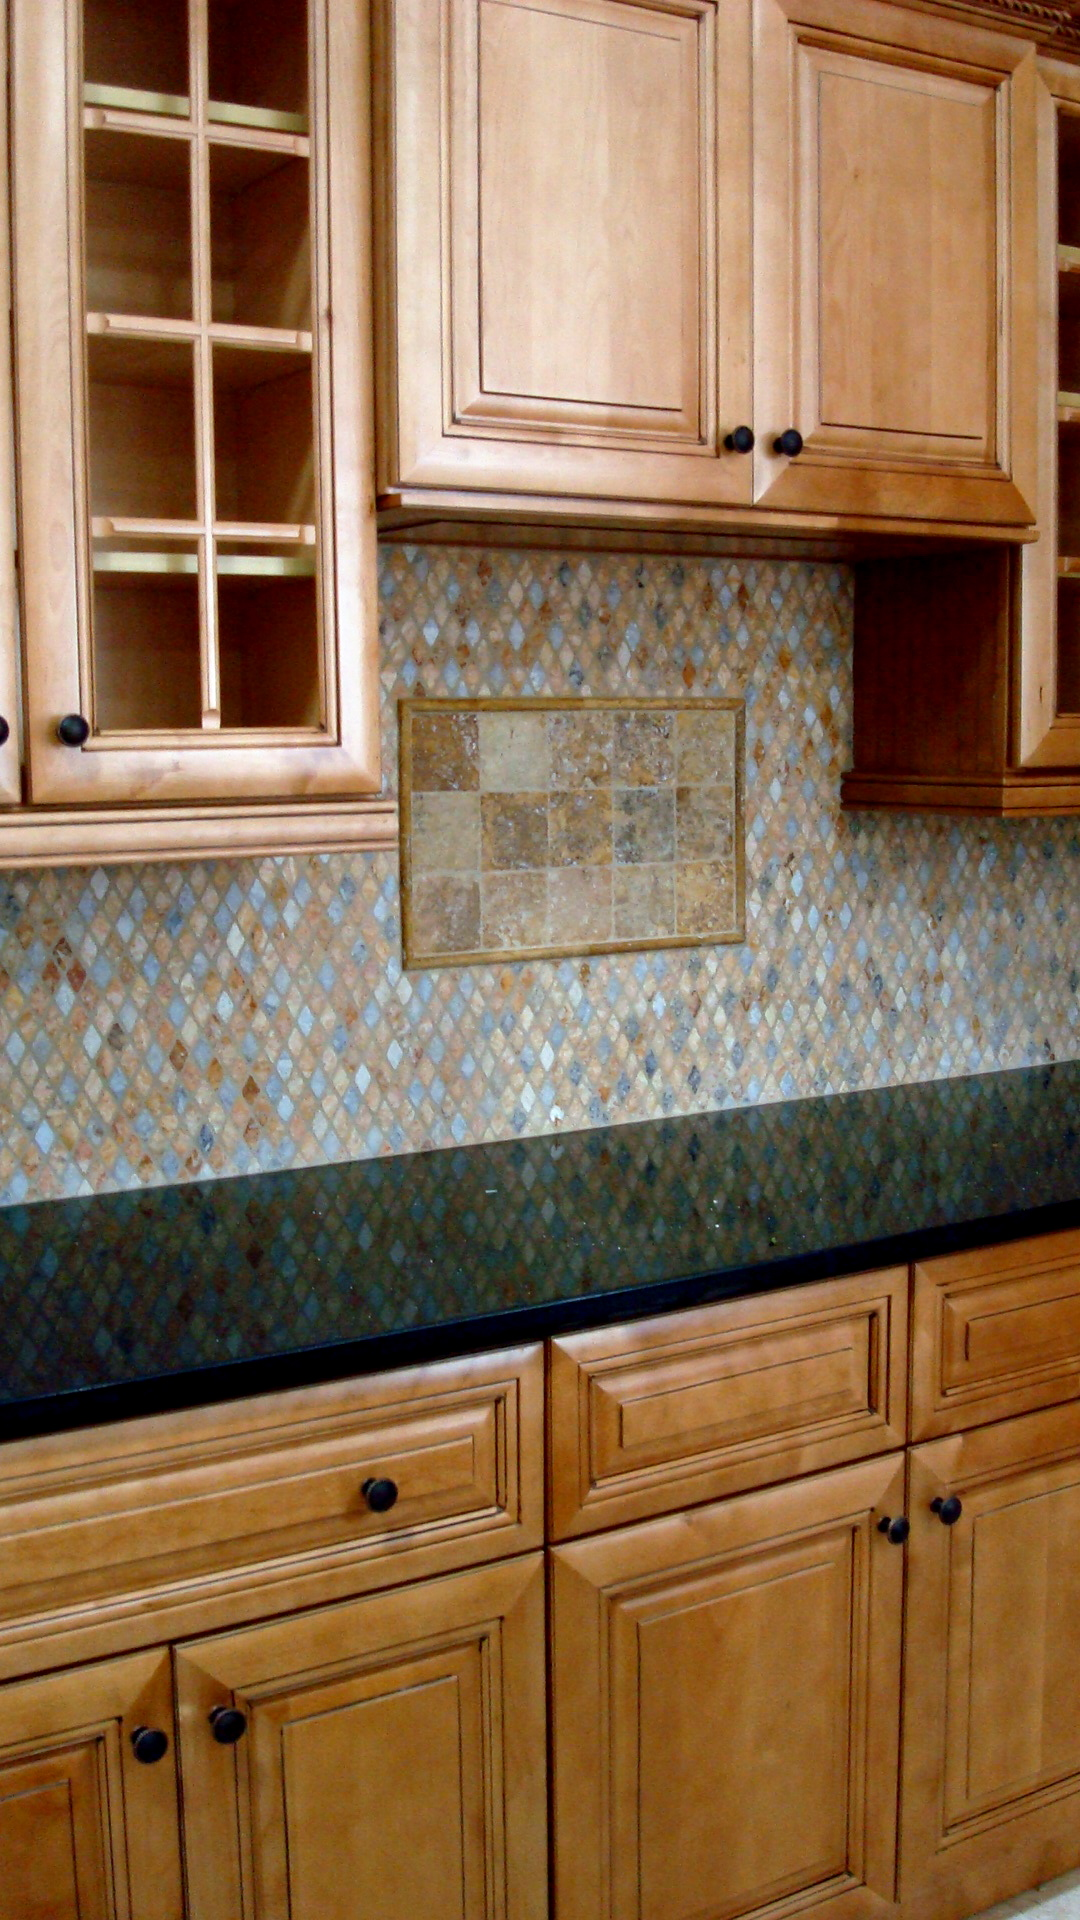 Floor & Decor Offers Design Options At Great Prices